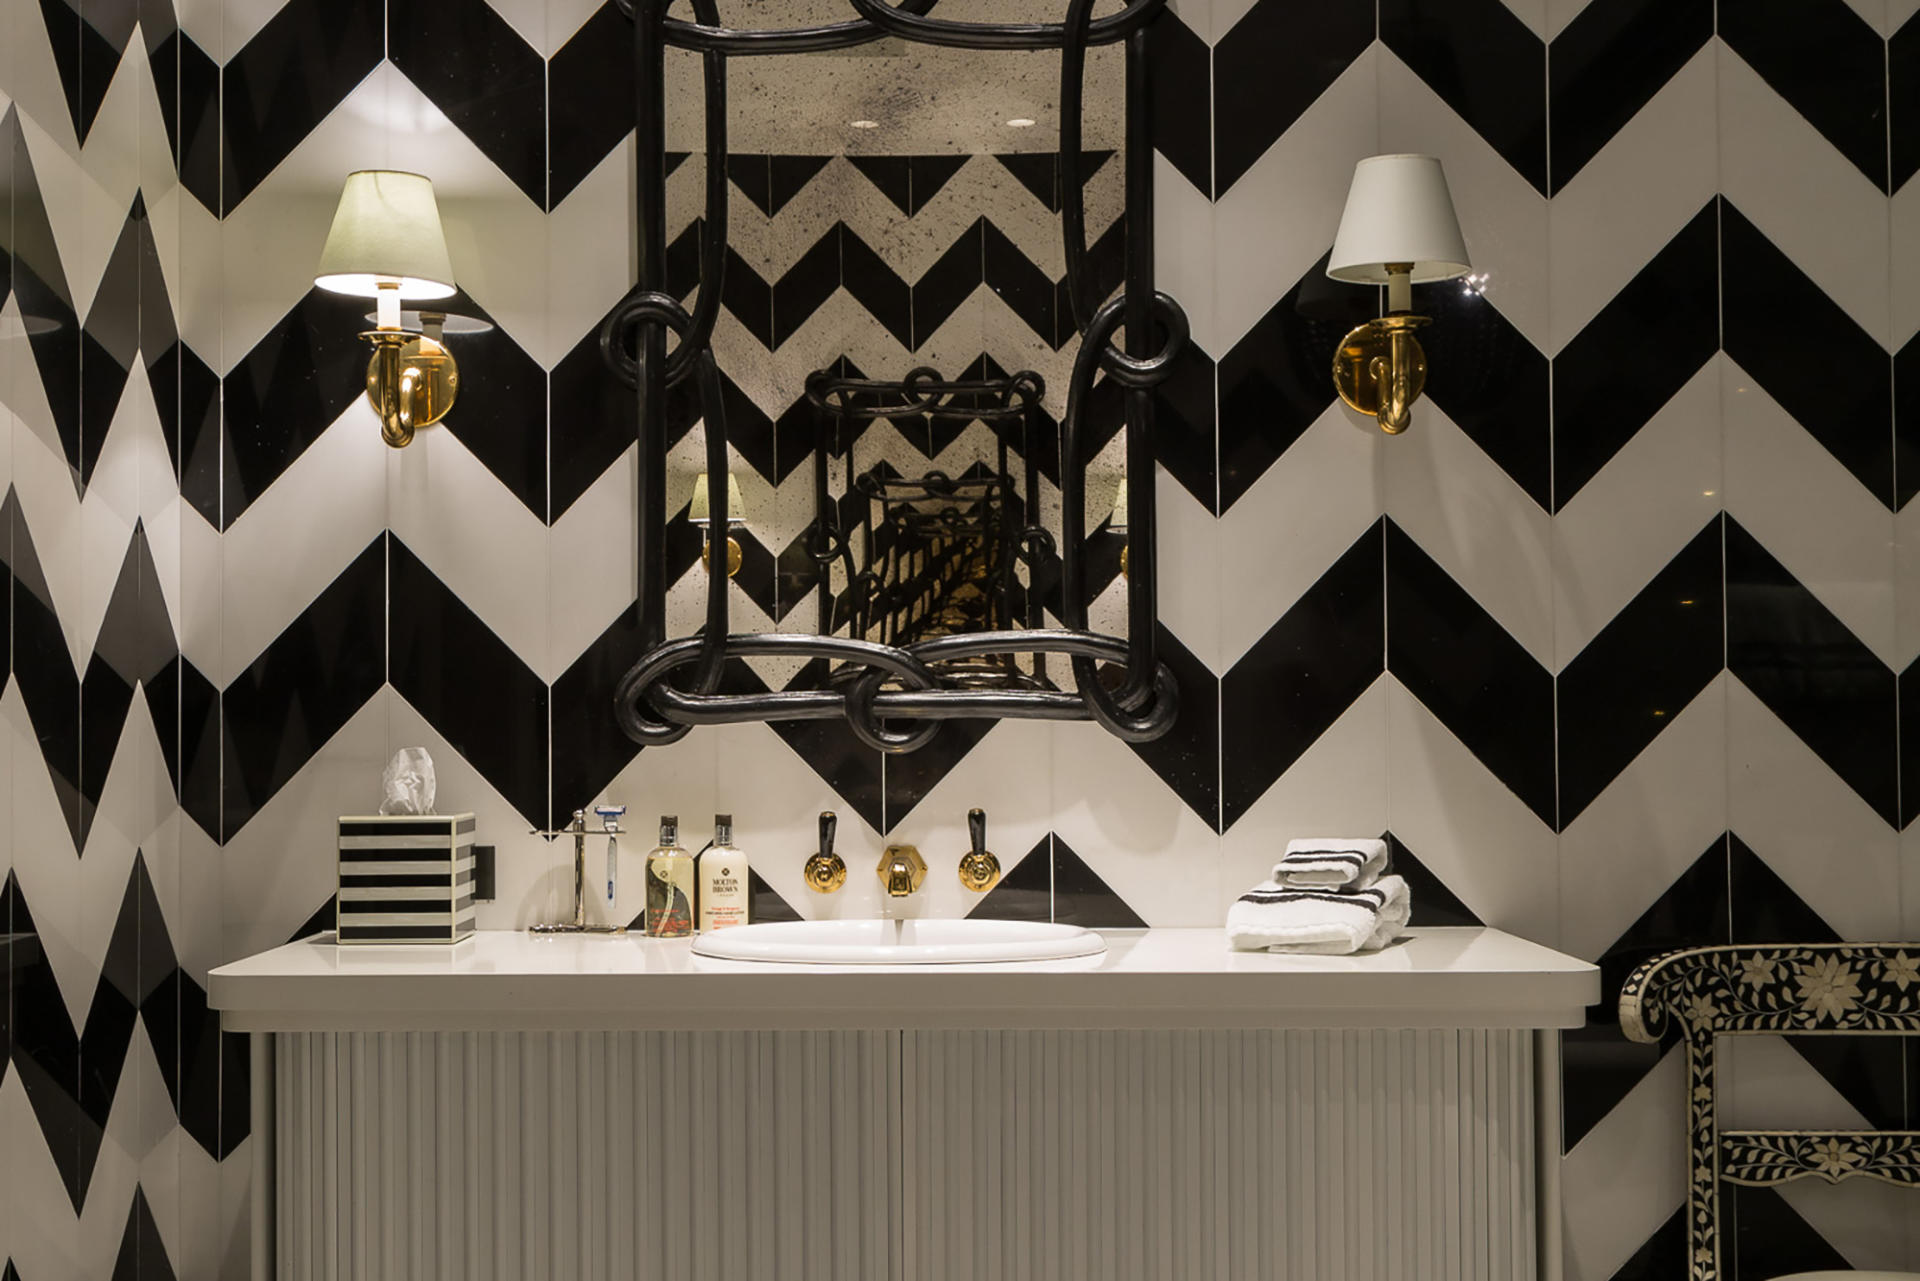 A bathroom in a luxury interior design project by Samantha Todhunter Design